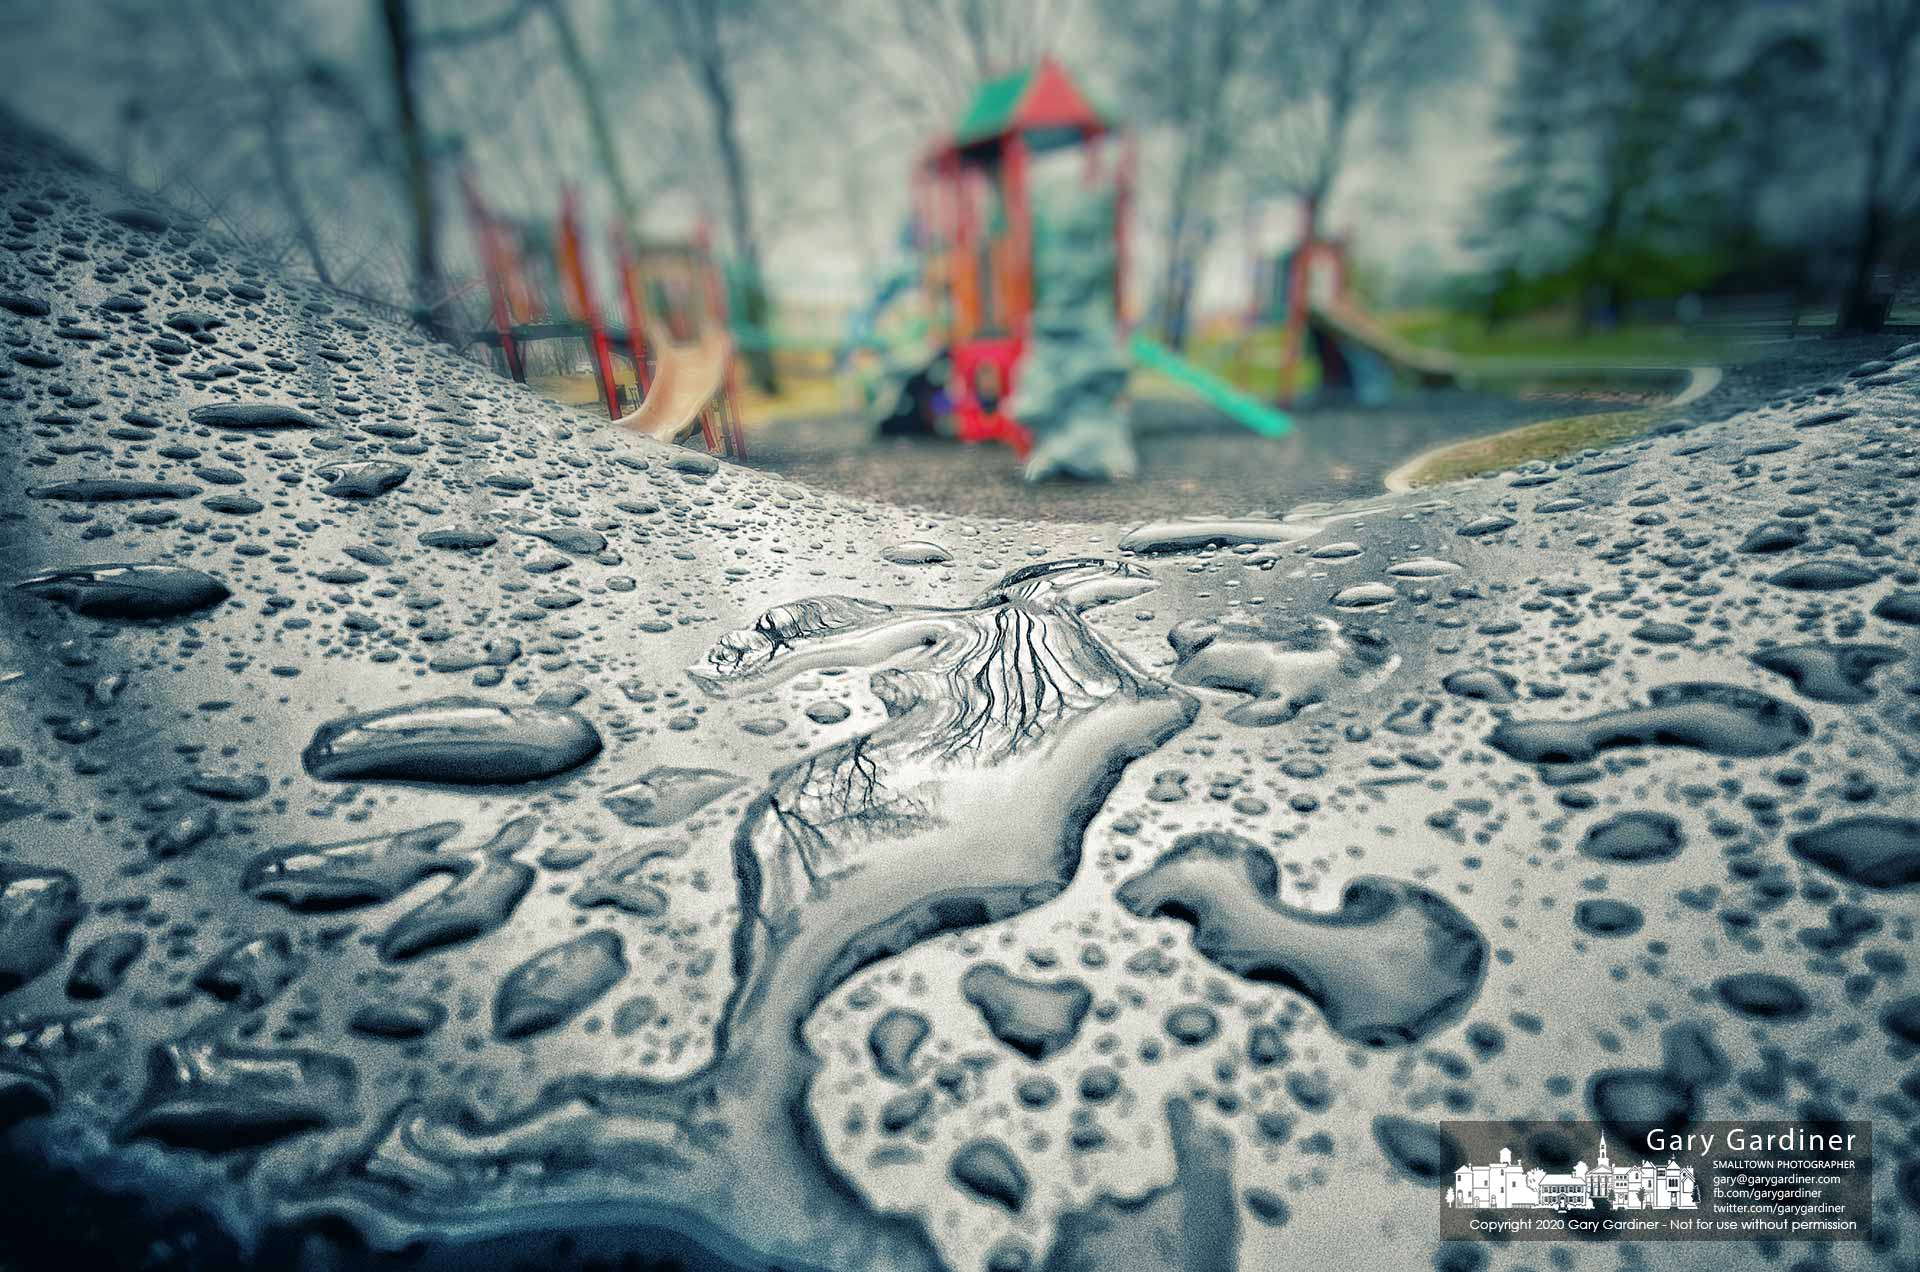 The bare trees surrounding the Alum Creek Park playground are reflected in puddles settling onto one of the seats in a swing at the park after a night and day of rain. My Final Photo for Jan. 24, 2020.